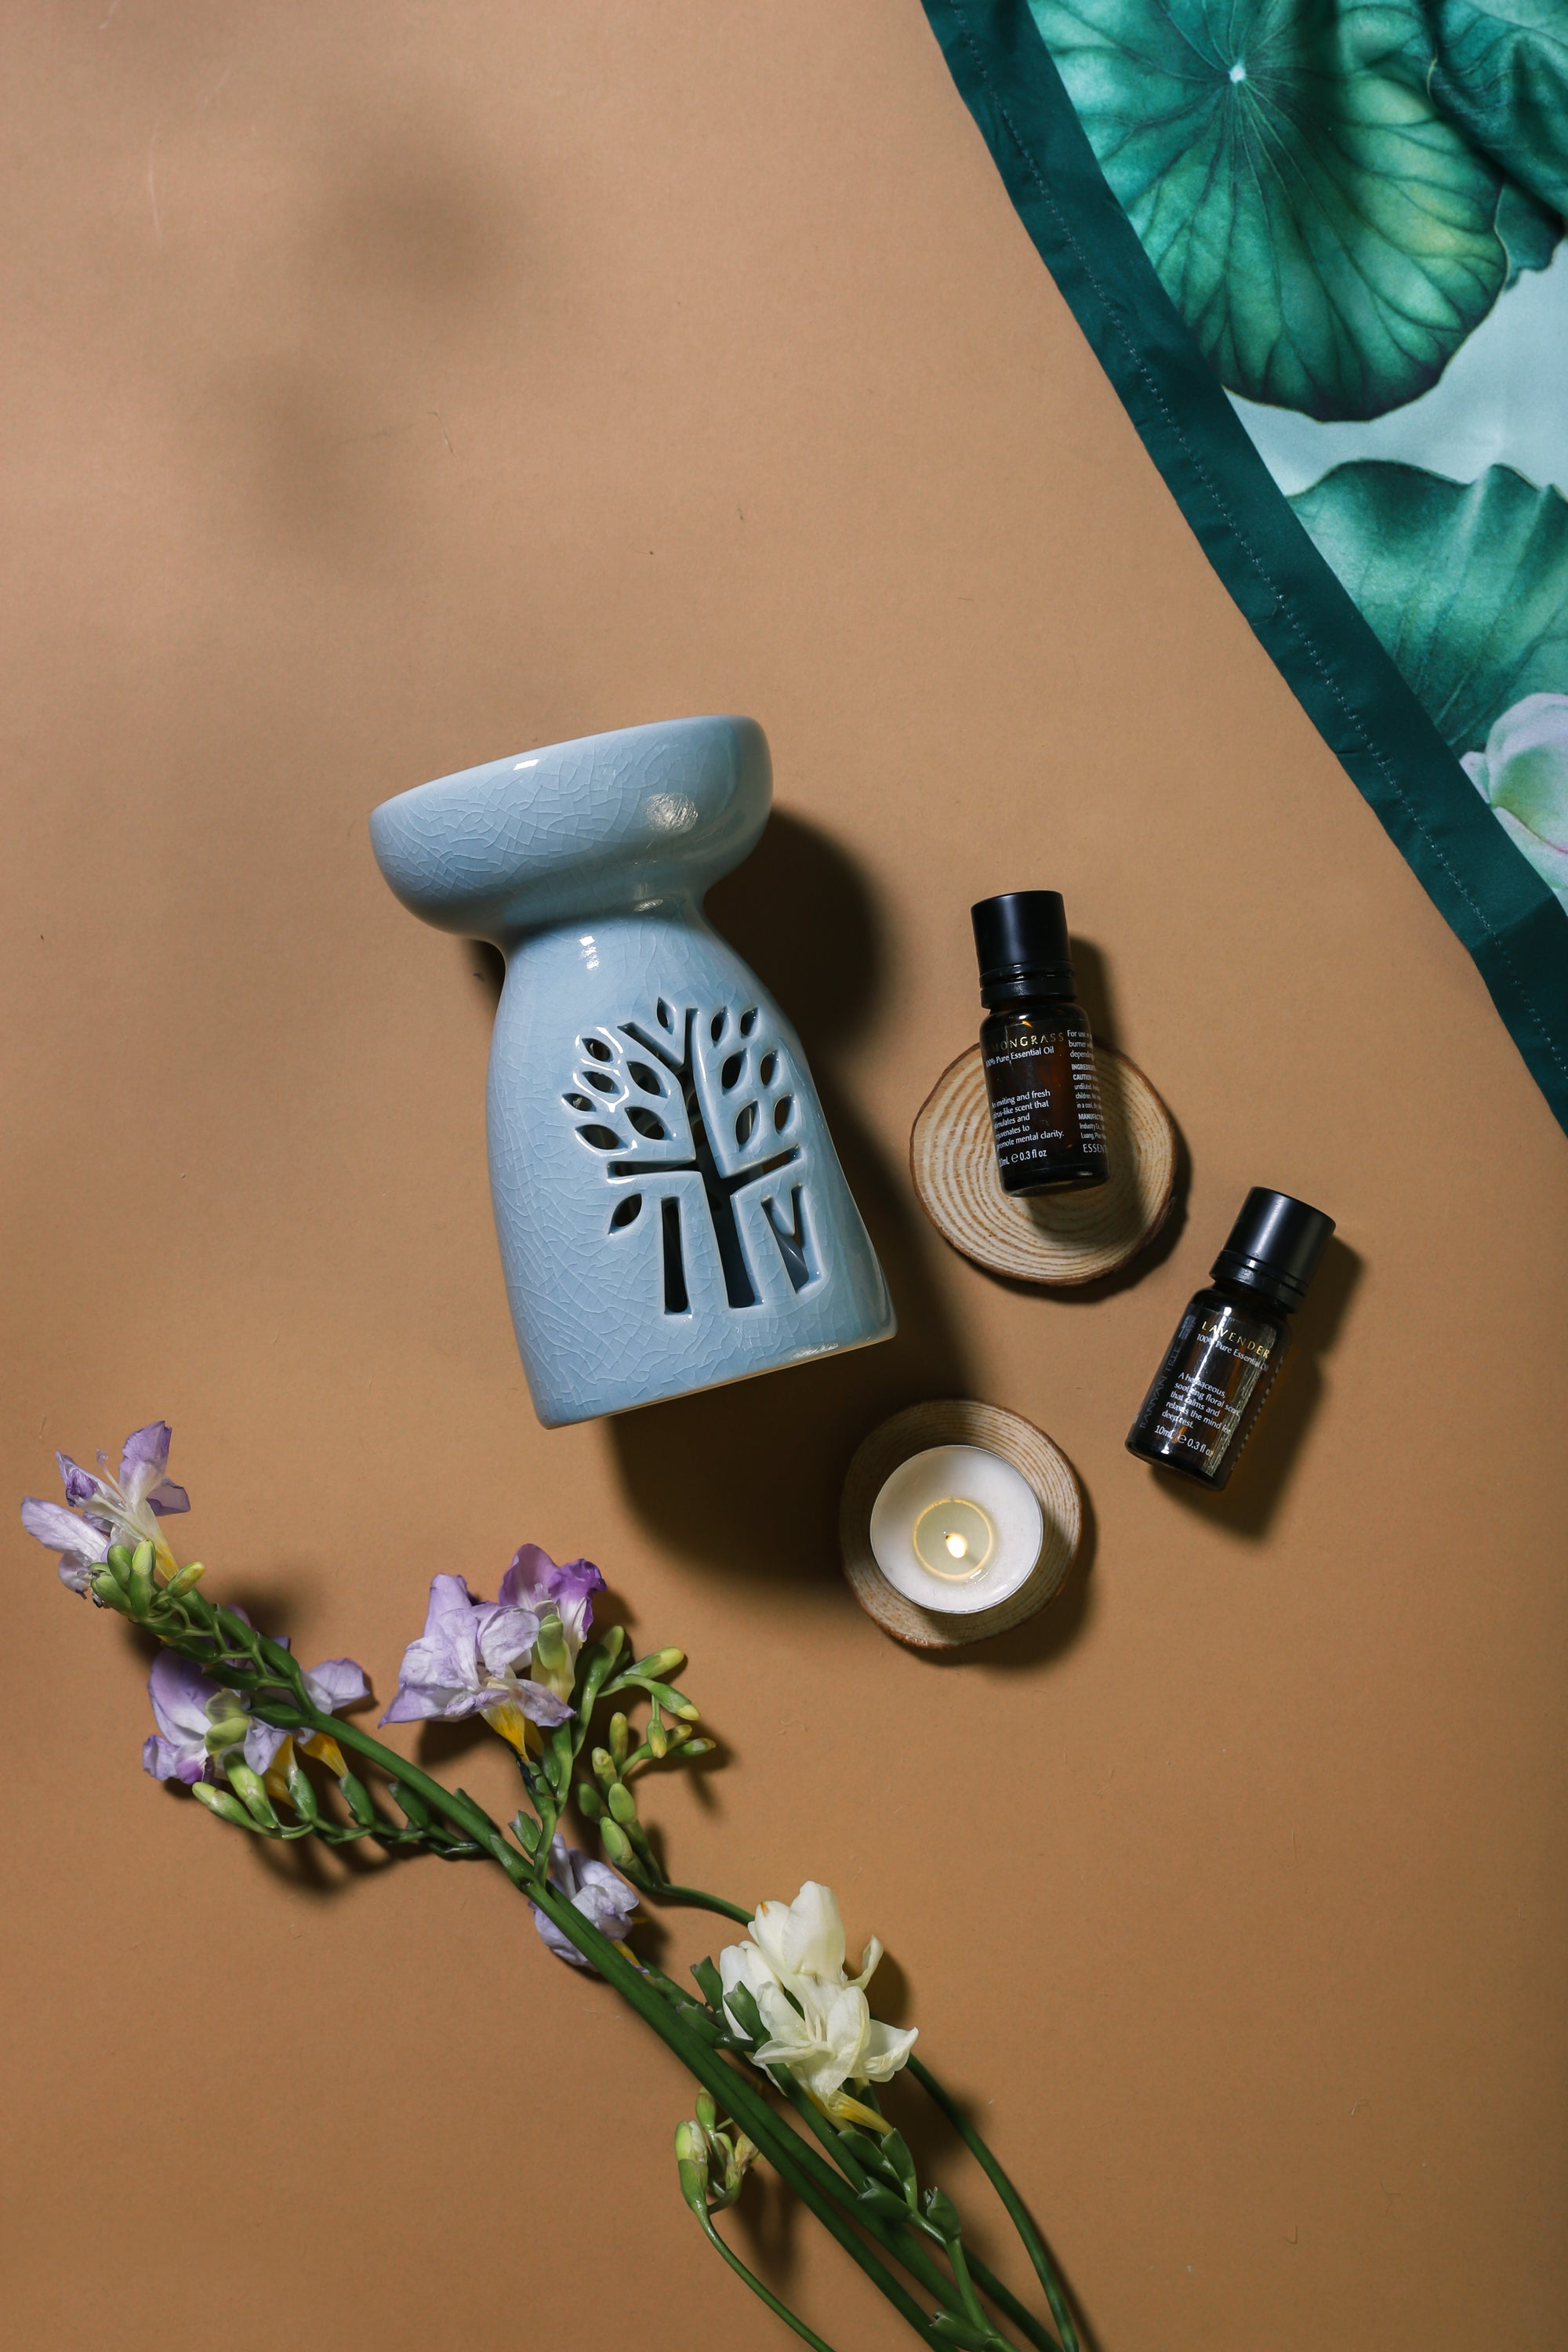 Aromatherapy set with ceramic oil burner and two essential oils styled by Banyan Tree